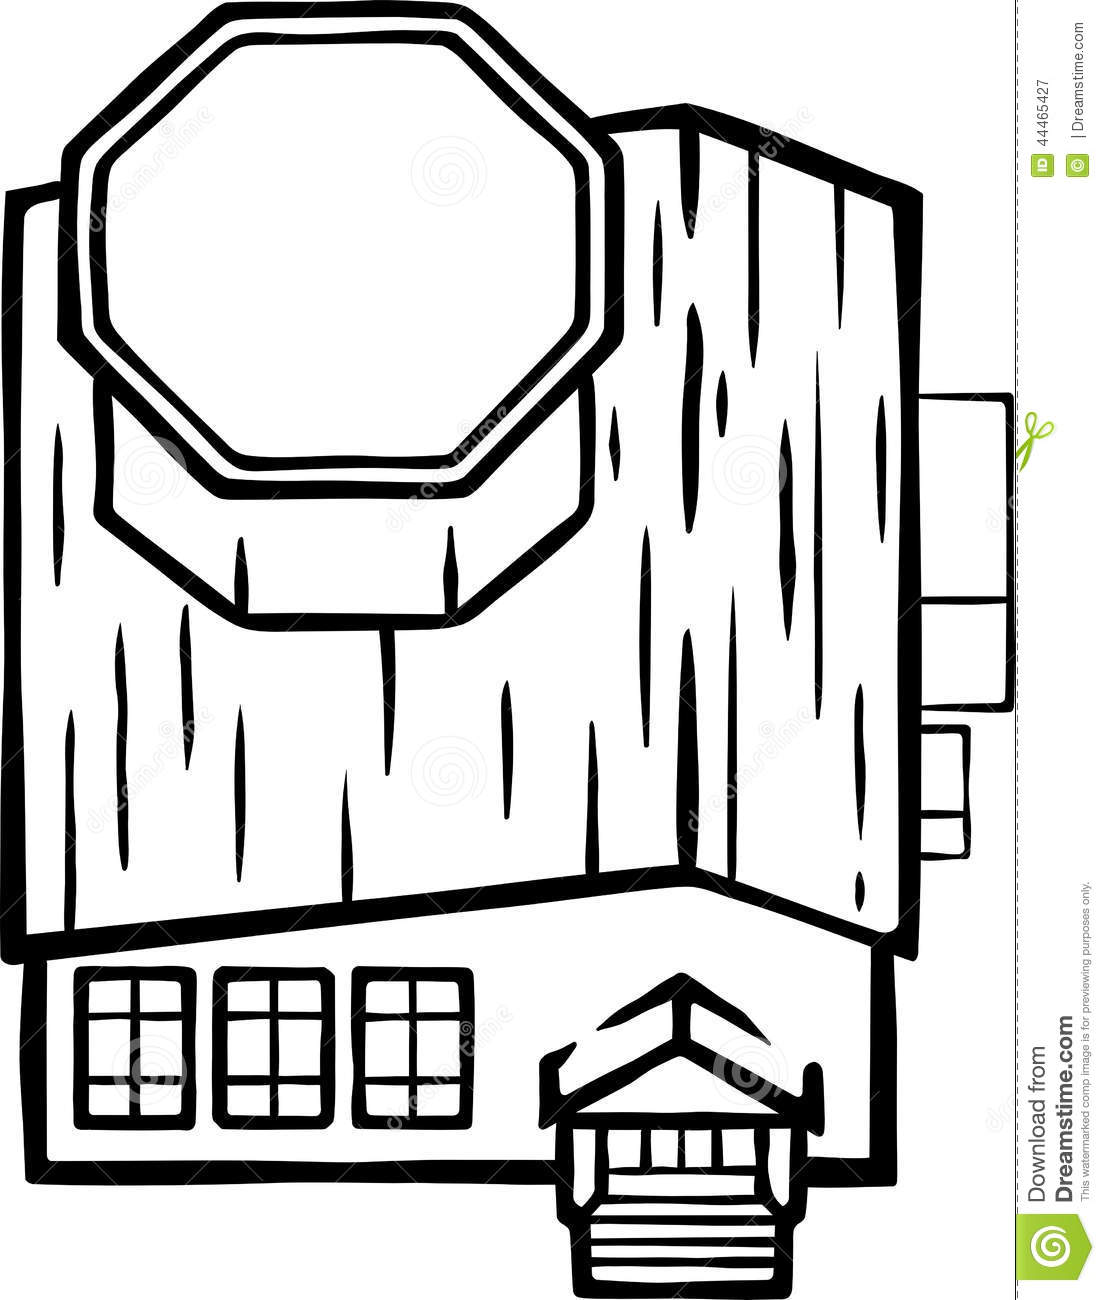 Line Drawing Library : Library building illustration organic lines stock